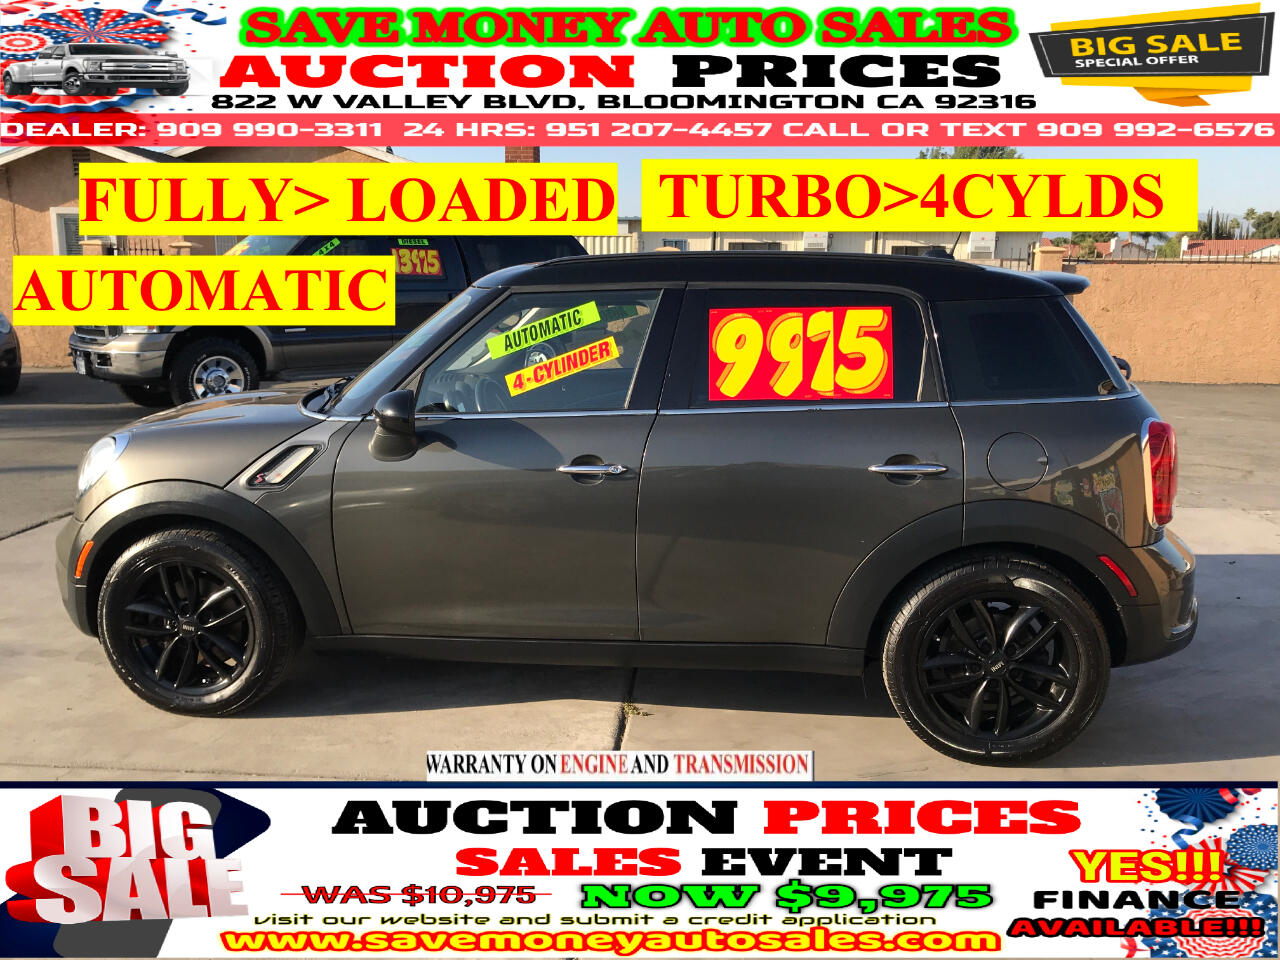 2011 MINI Countryman S TYPE>4CYLDS>BLUETOOTH>FULLY LOADED!!!